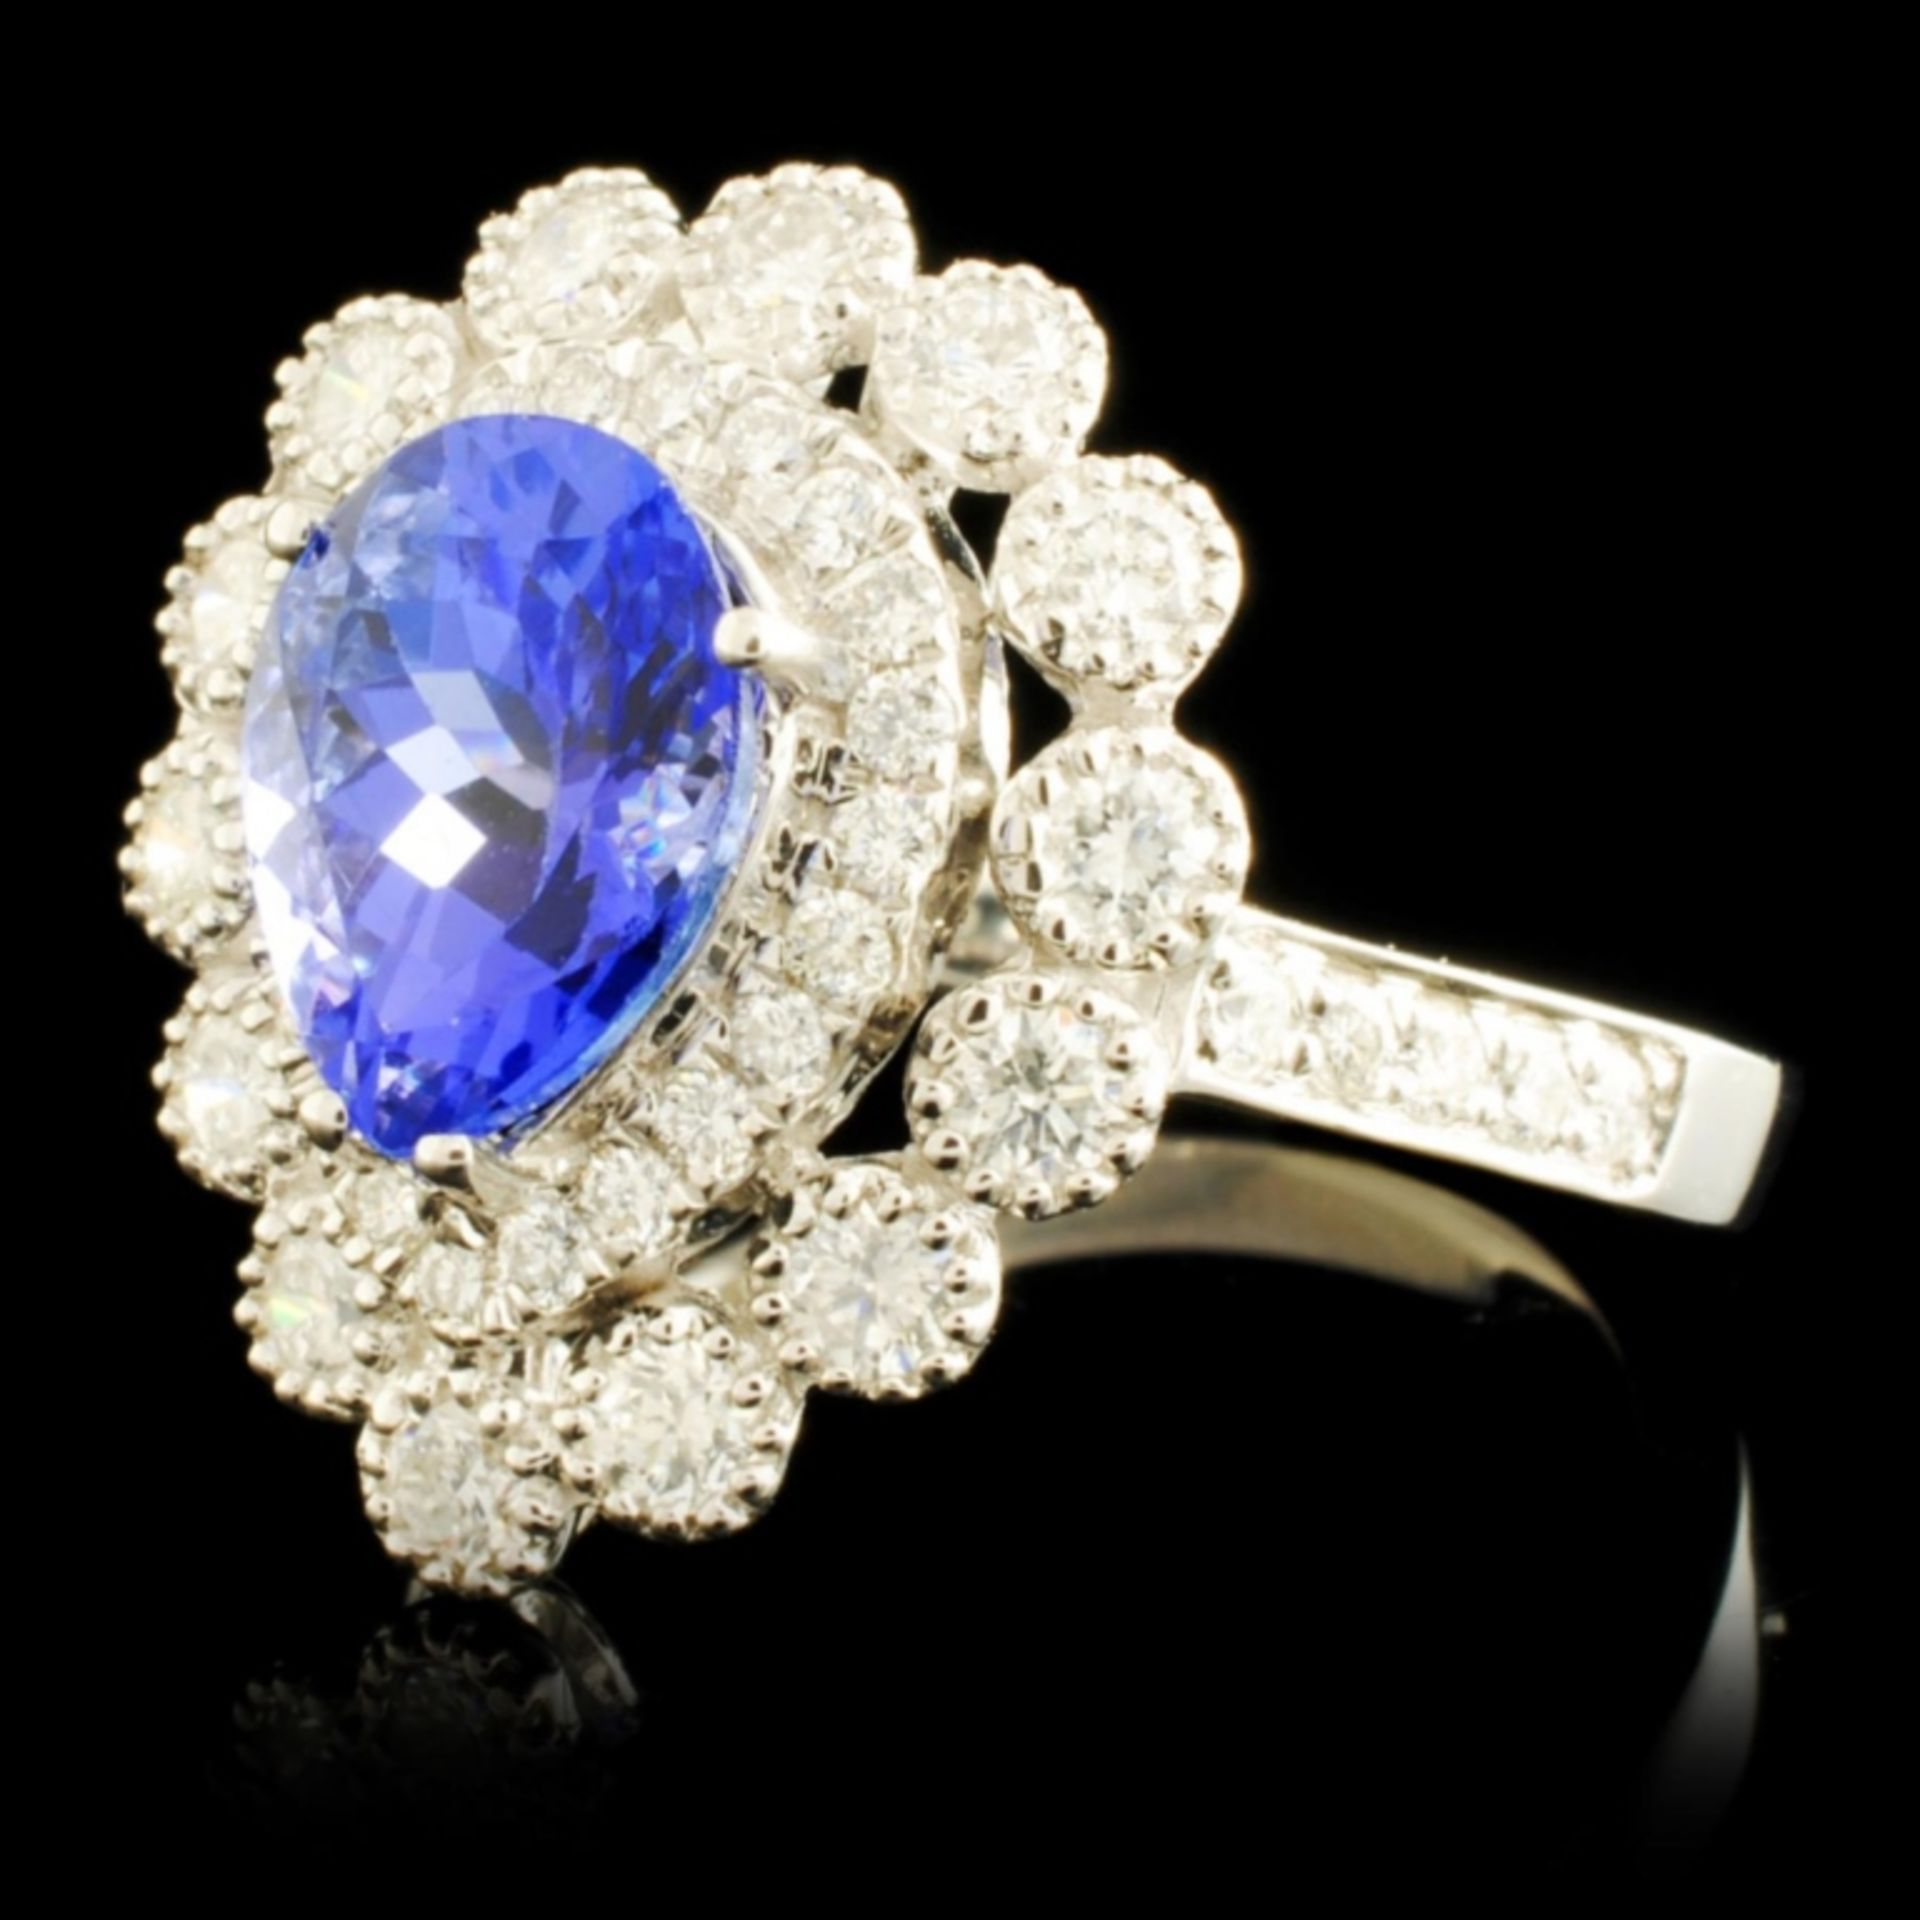 18K Gold 1.95ct Tanzanite & 0.87ctw Diamond Ring - Image 2 of 5